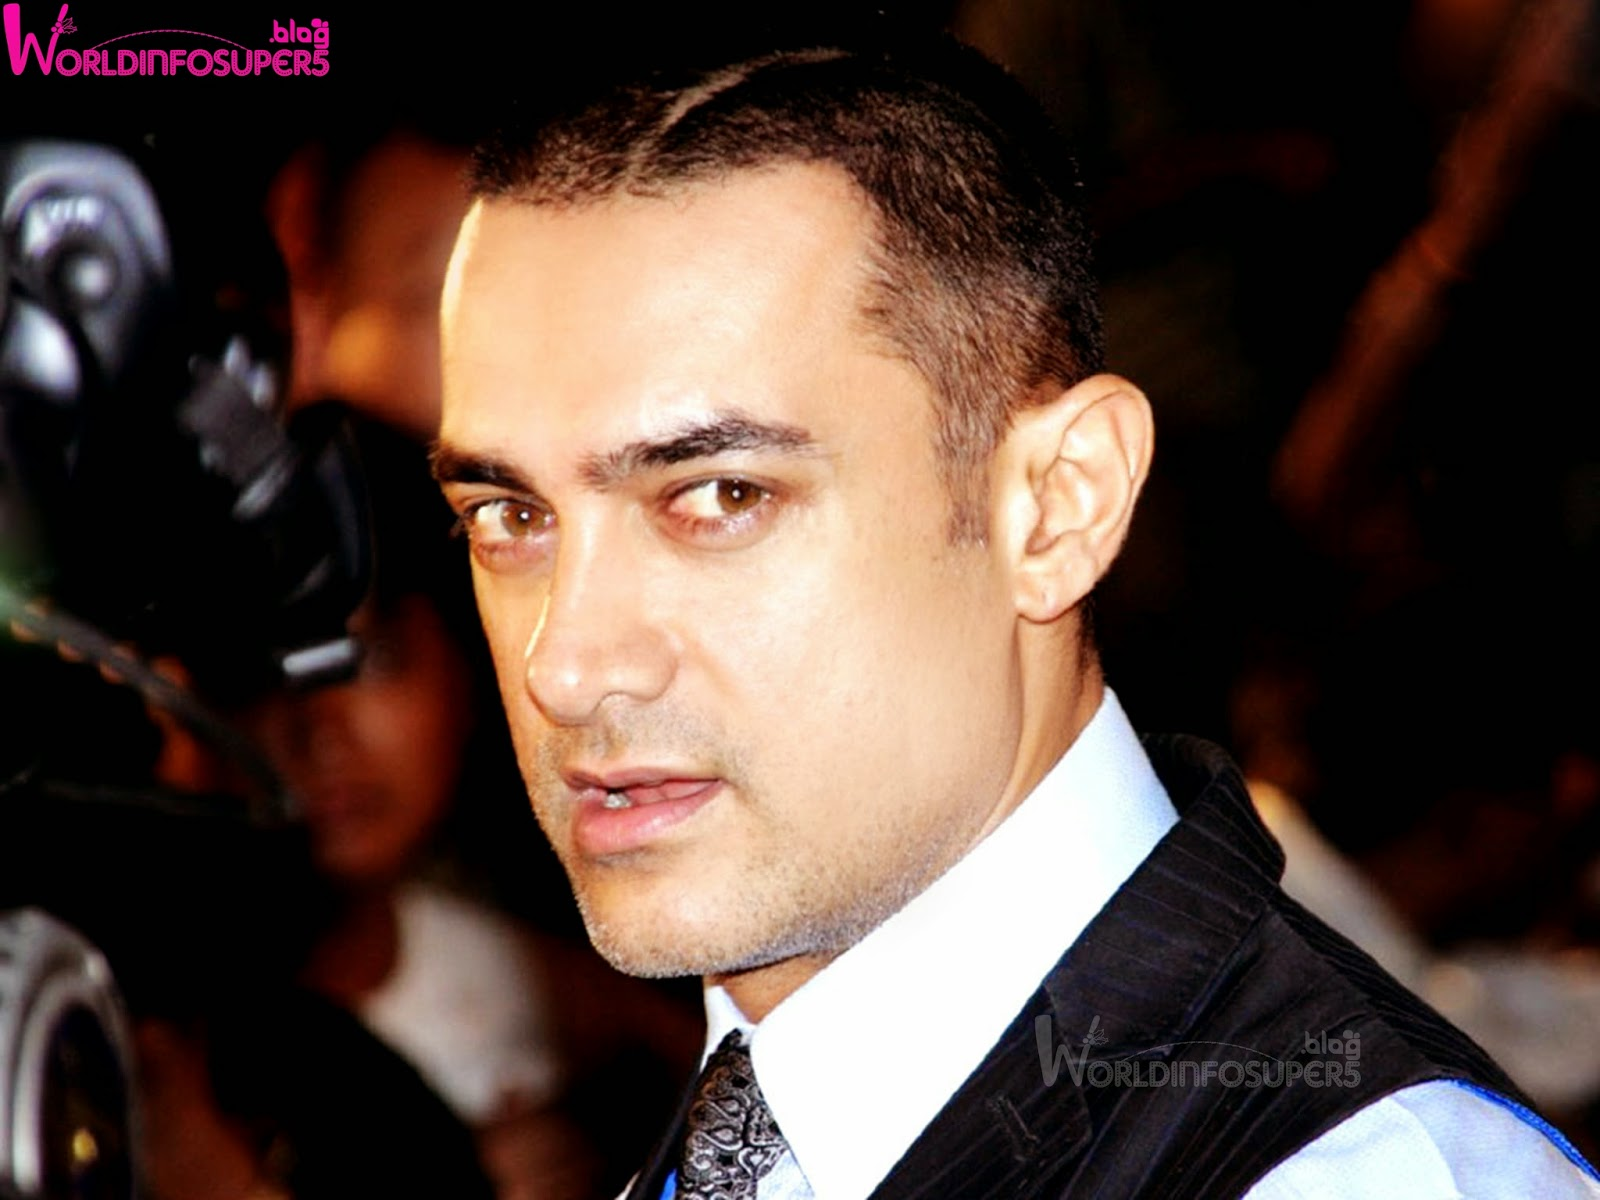 world information blog: aamir khan personal information